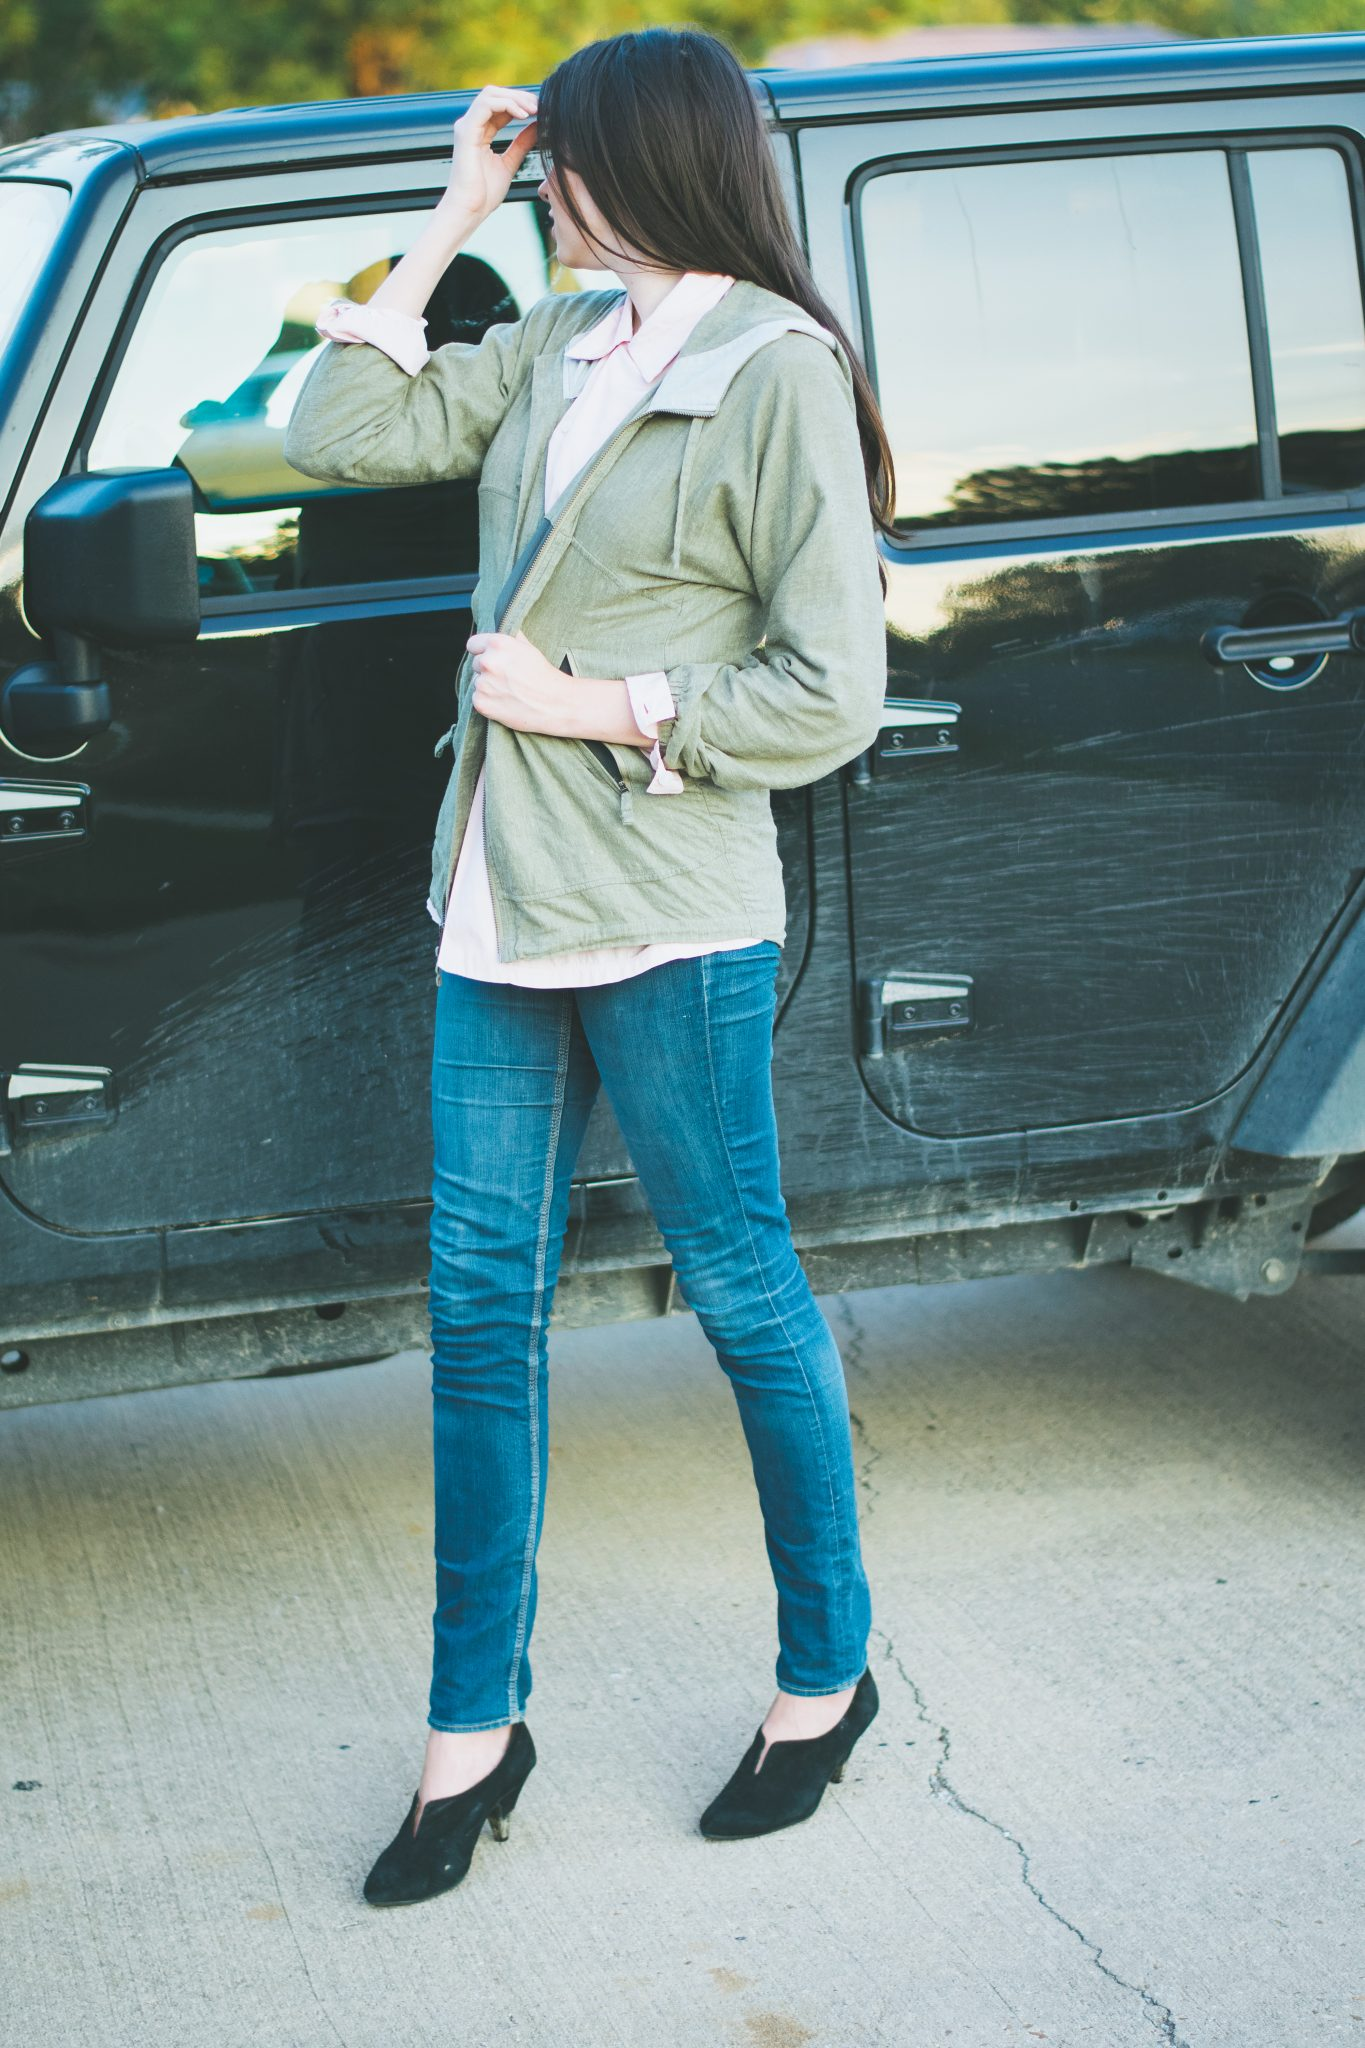 Blush pink blouse with olive green patagonia jacket.